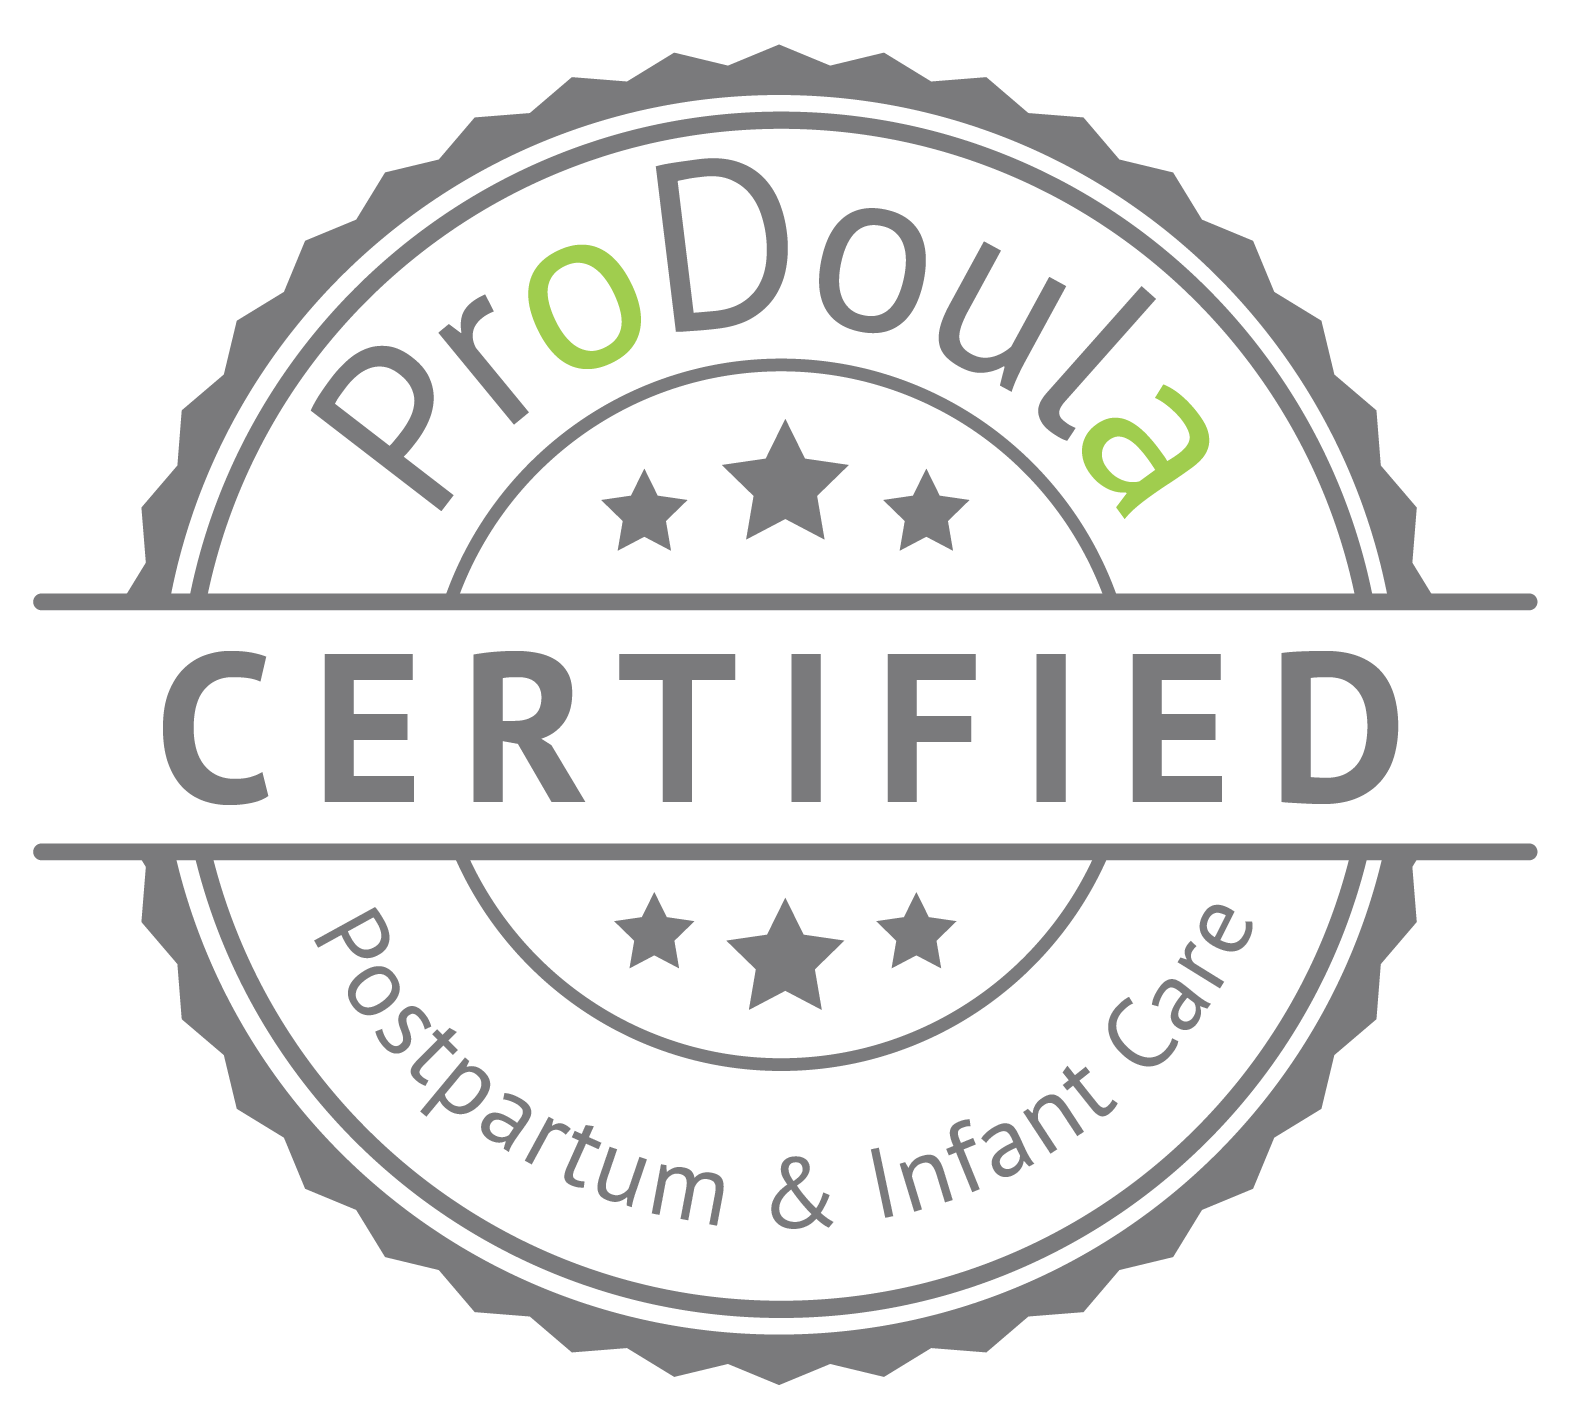 P&ICD-certified-badge.png